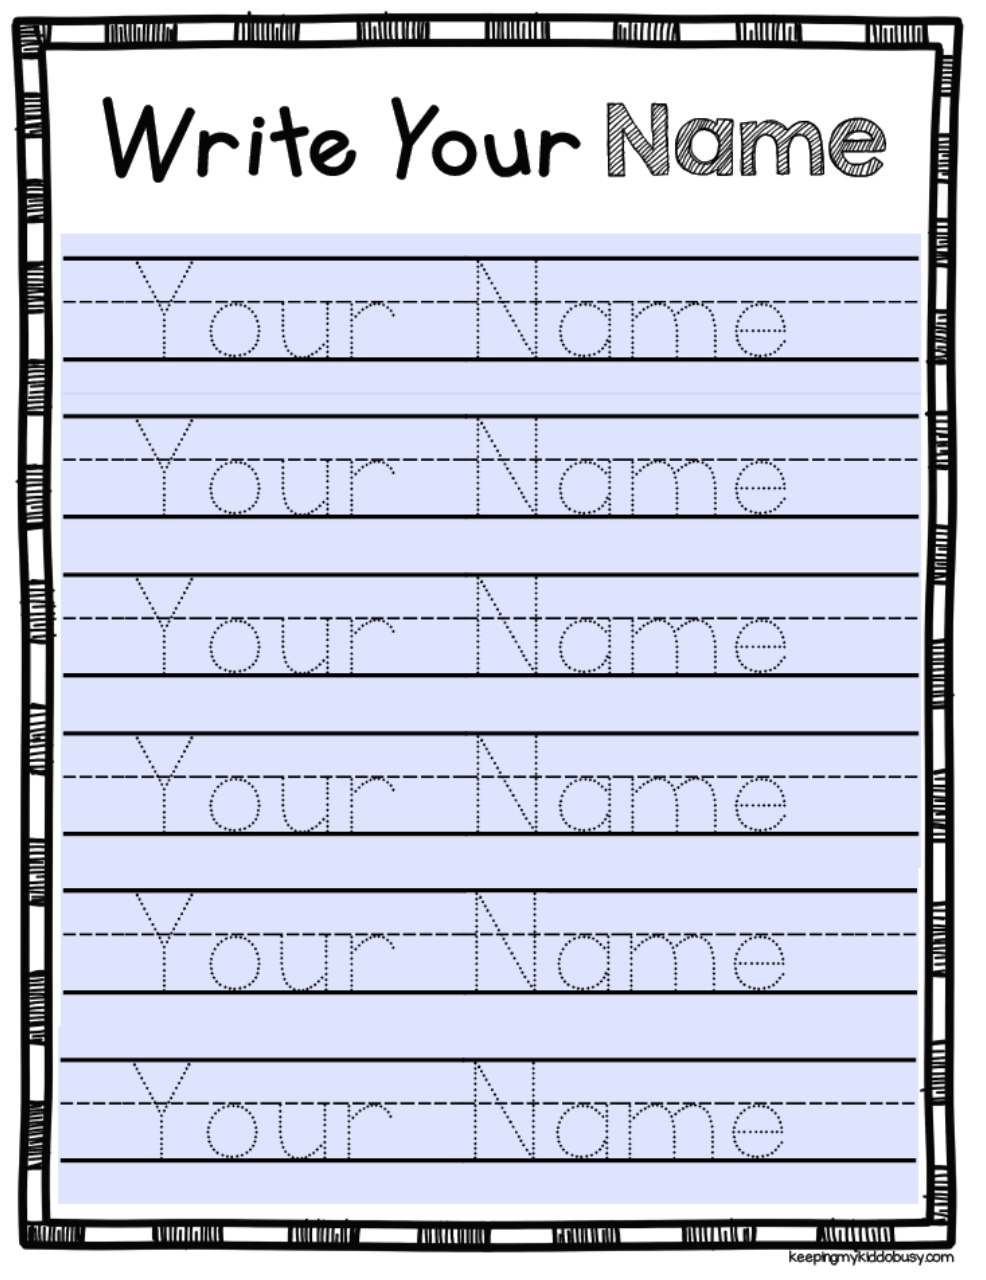 Free Editable Name Tracing Activity - Type Student Names And intended for Letter Tracing Editable